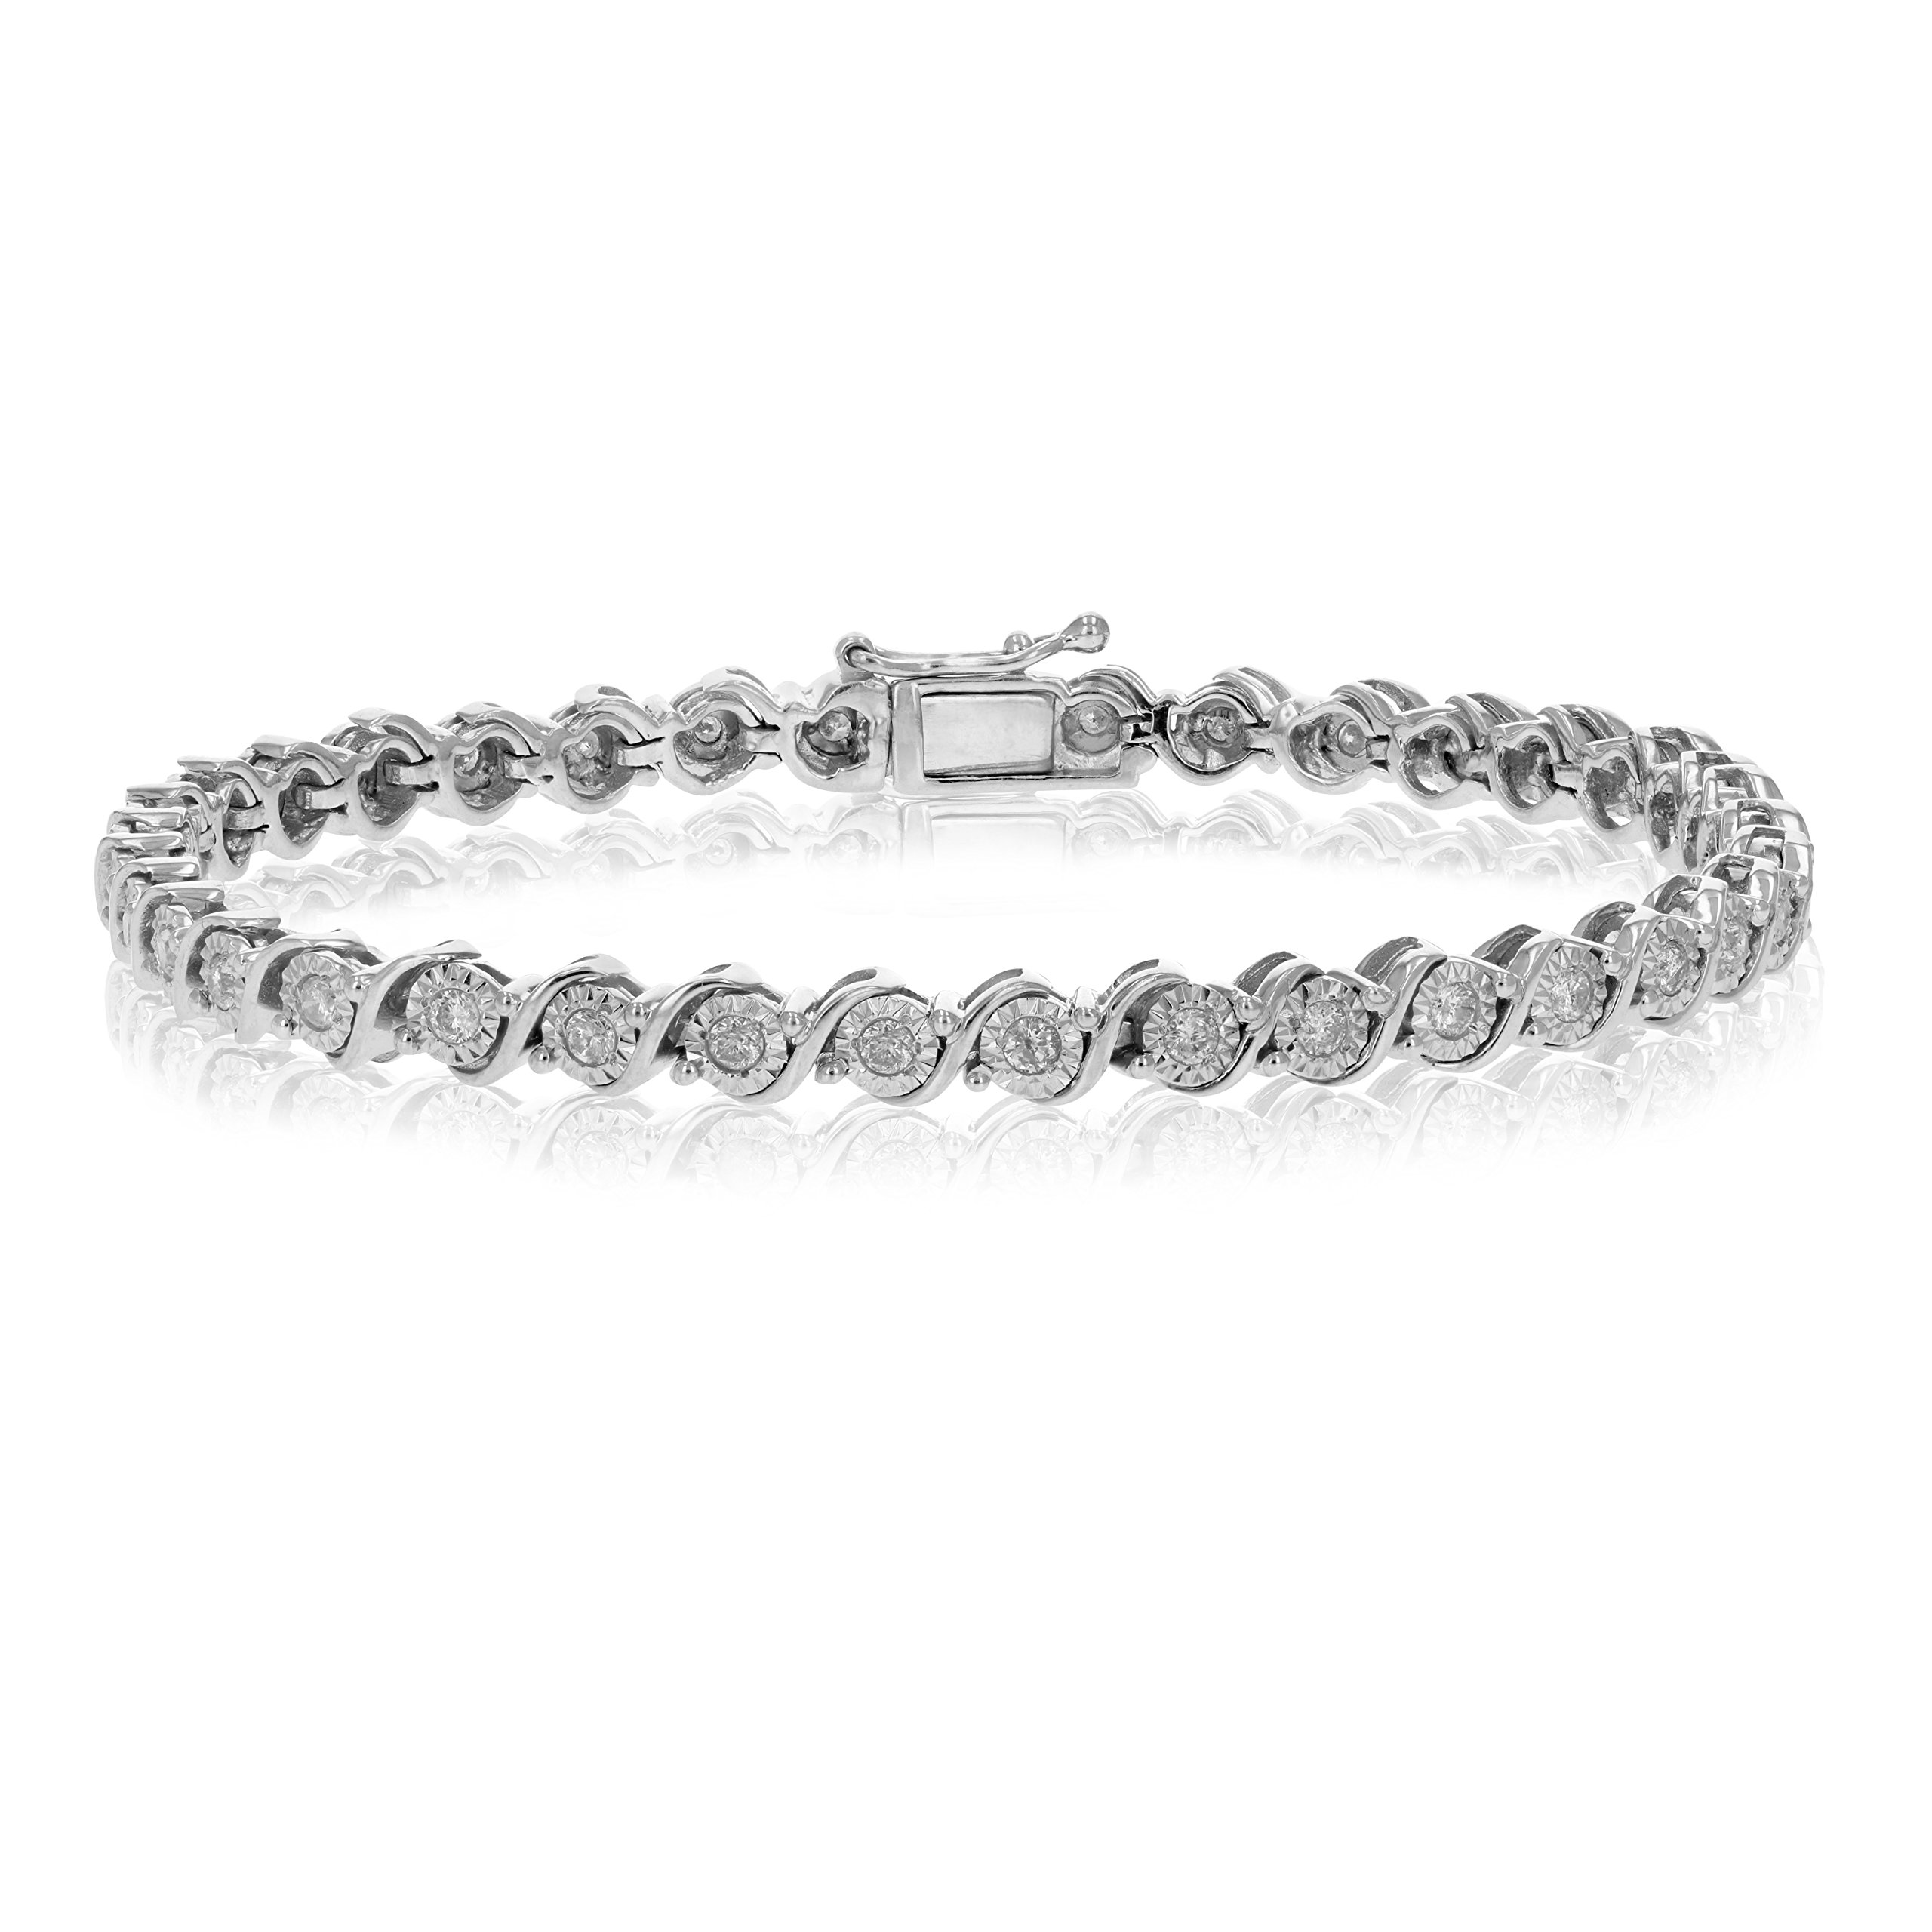 1 CT I1-I2 AGS Certified Diamond Bracelet in 10K Gold 11 Grams (I-J)